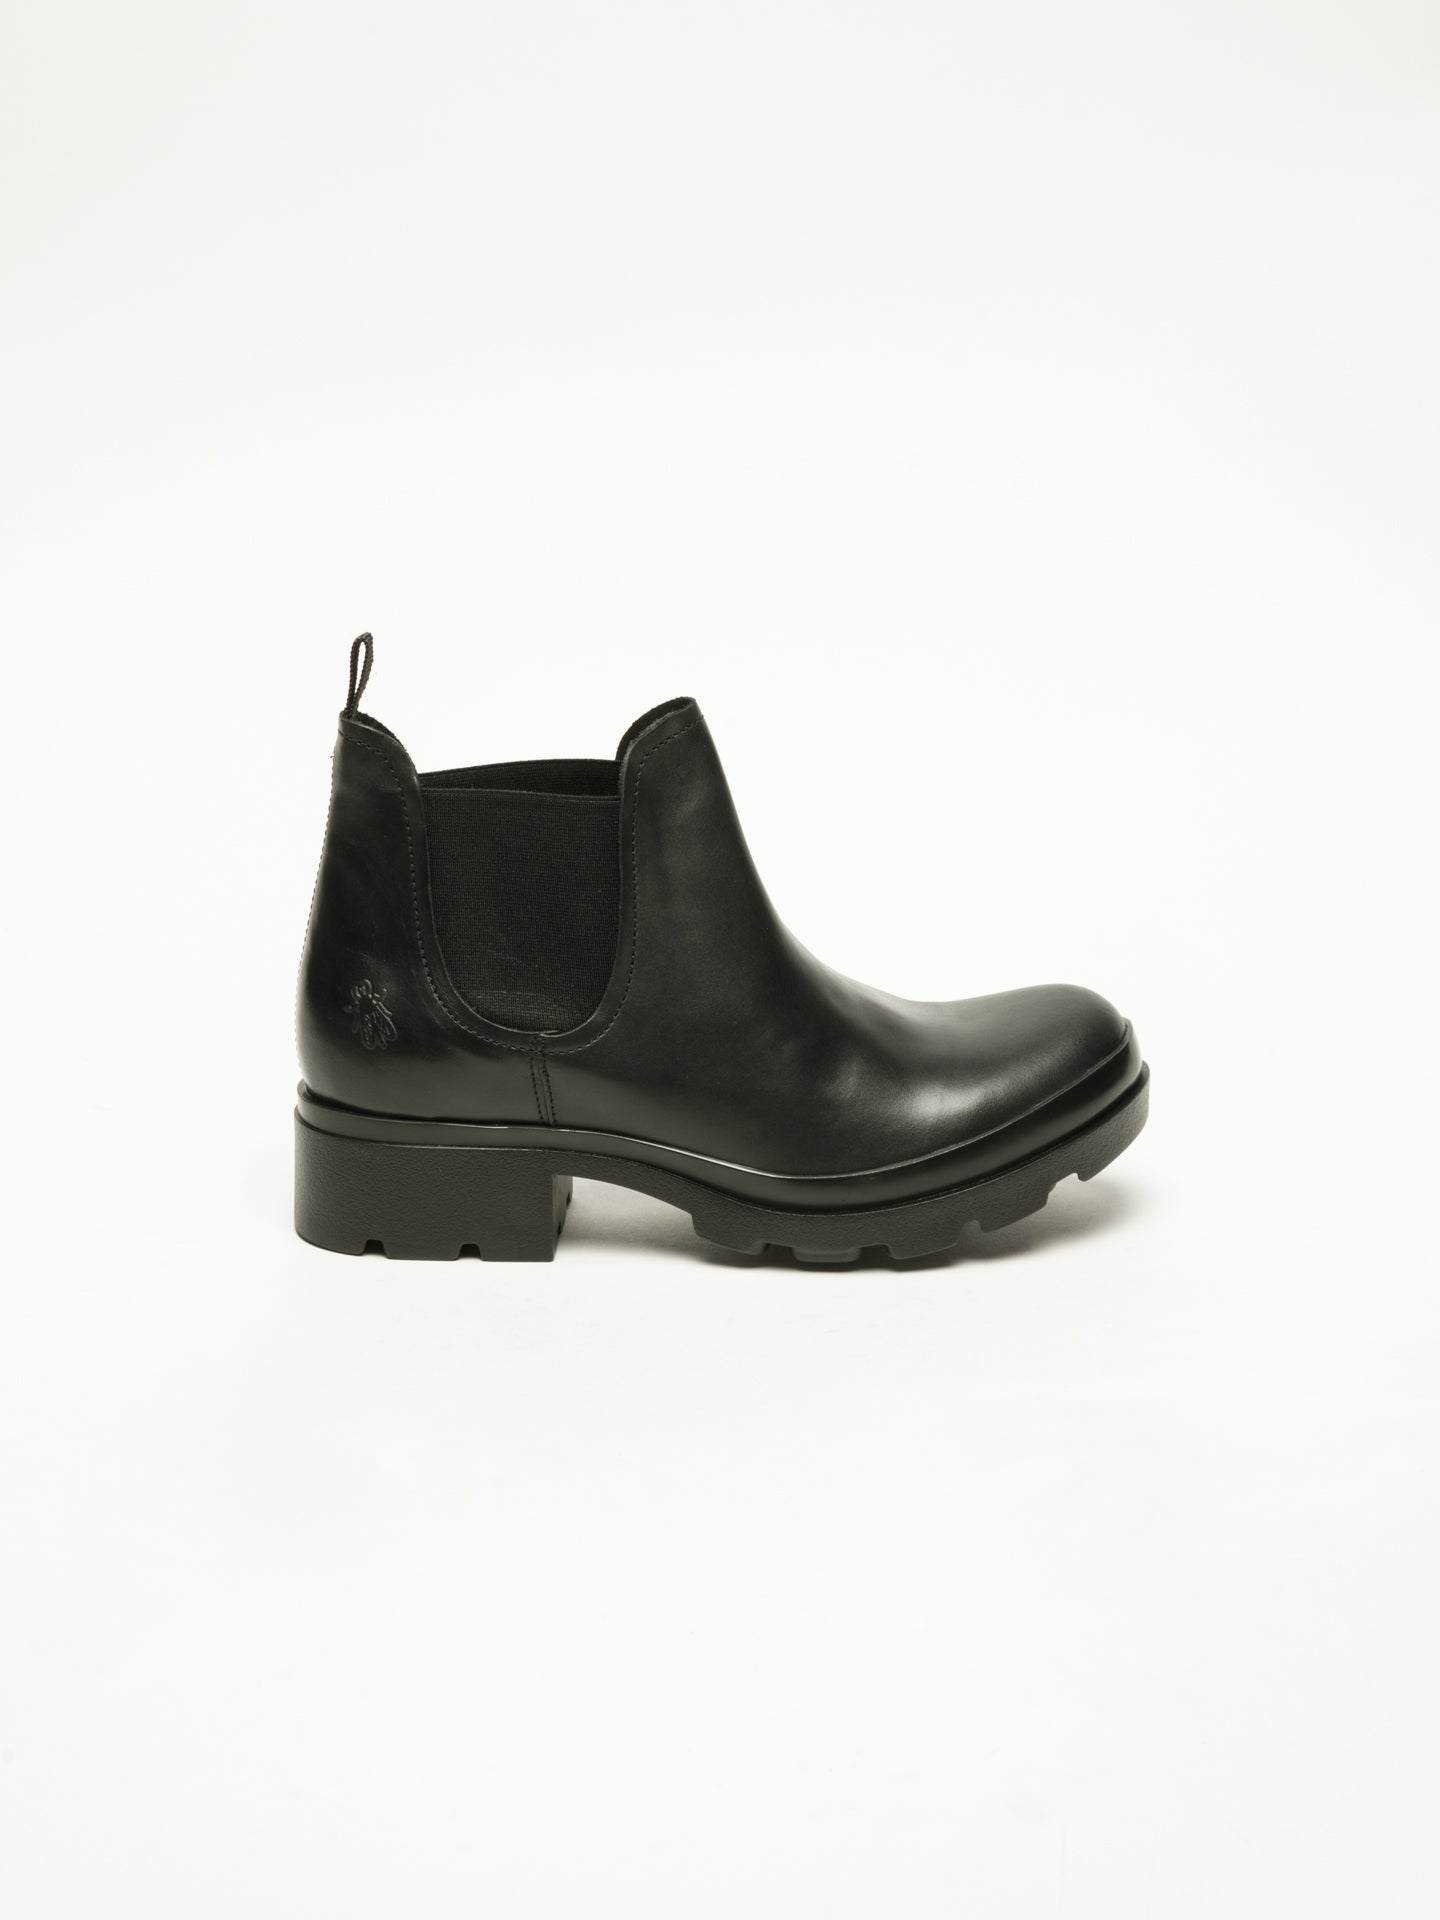 Fly London Stiefeletten im Chelsea-Stil in Schwarz